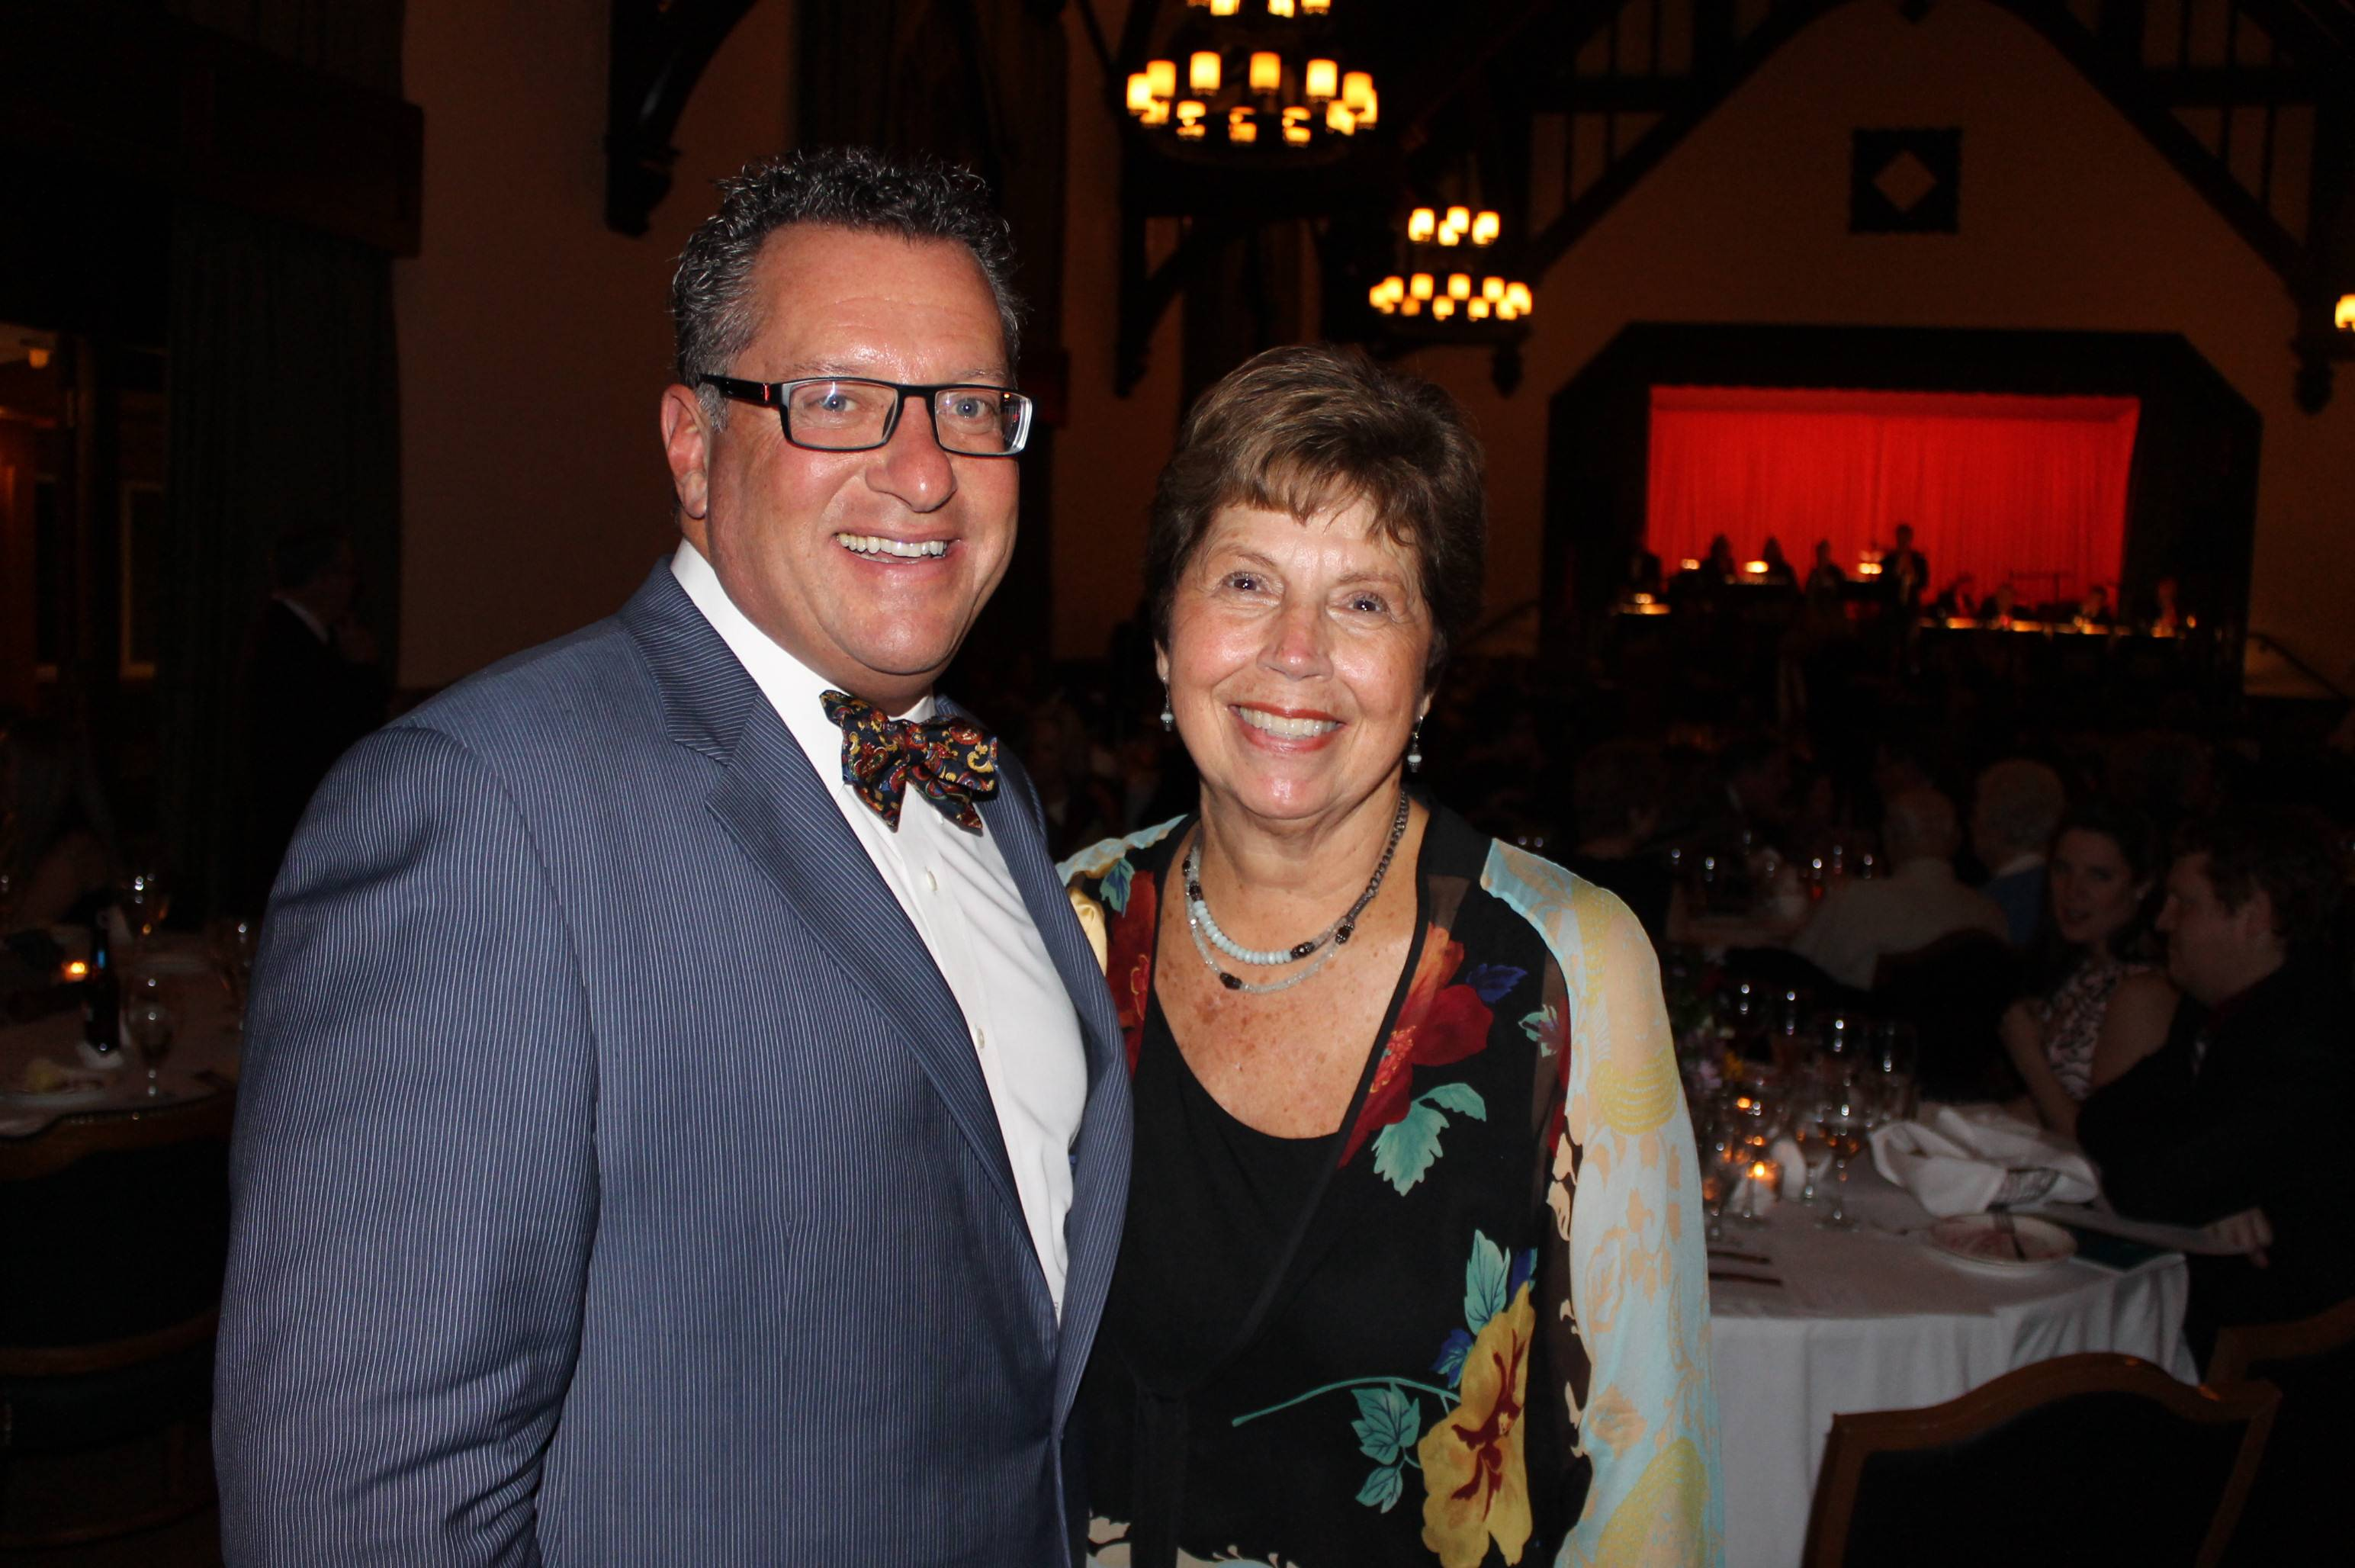 Midwest CareCenter Board Chairman Scott Vender with Honoree Dorothy Pitner HealyMidwest CareCenter